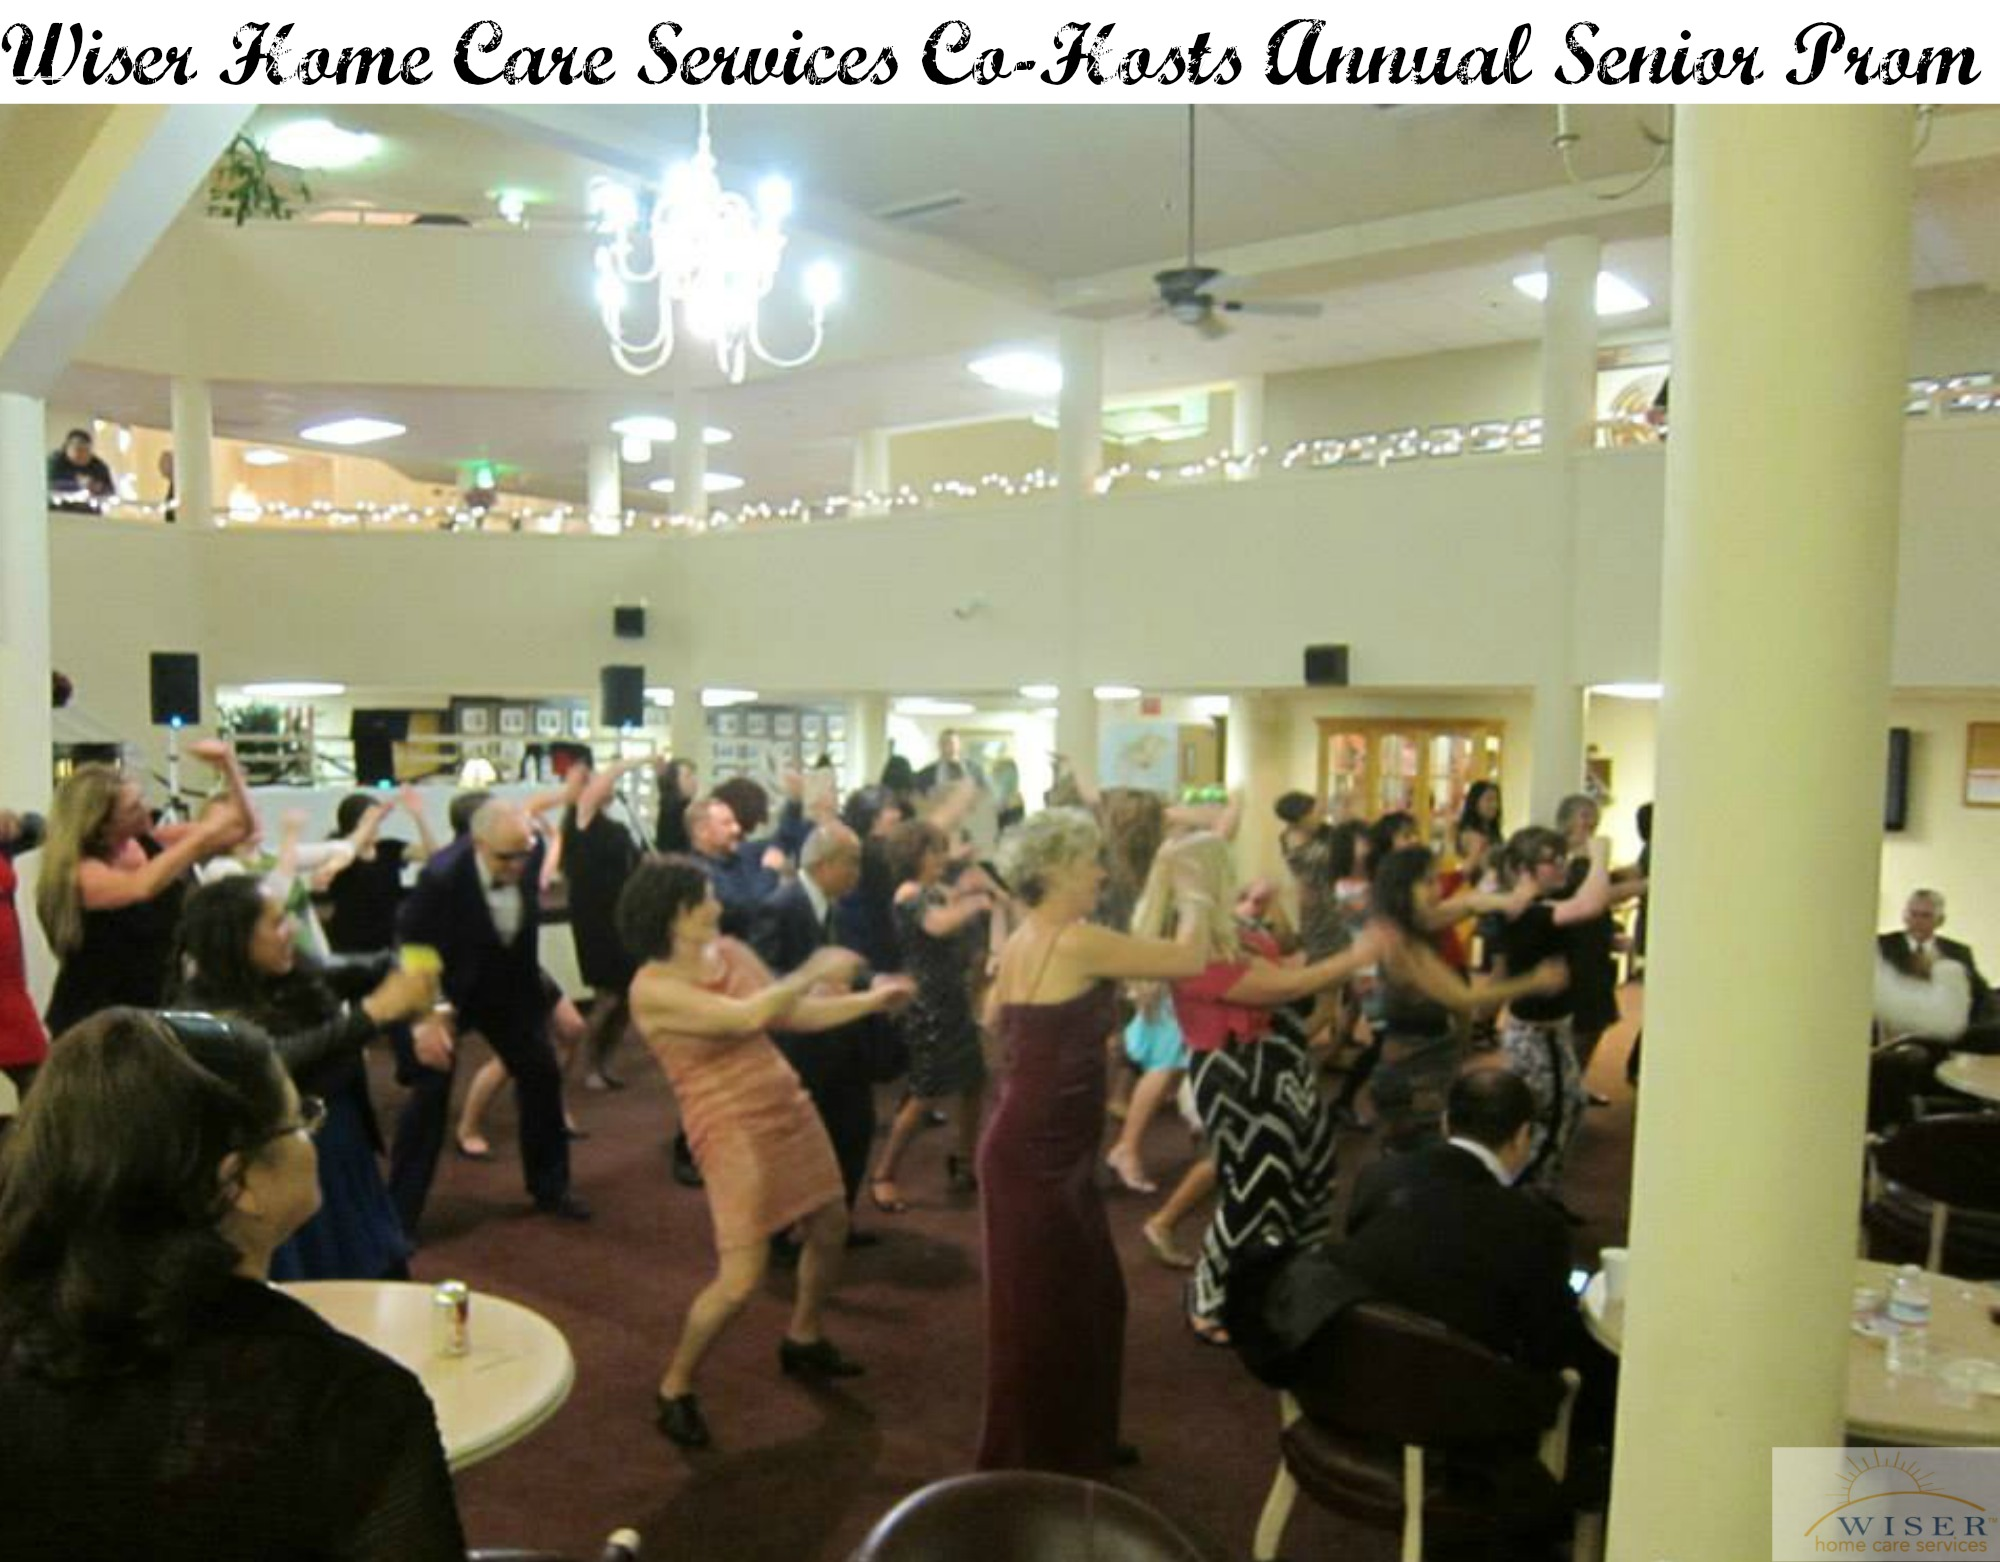 The Senior Prom was a big hit thanks to this team from Wiser Home Care Services and the YMCA.